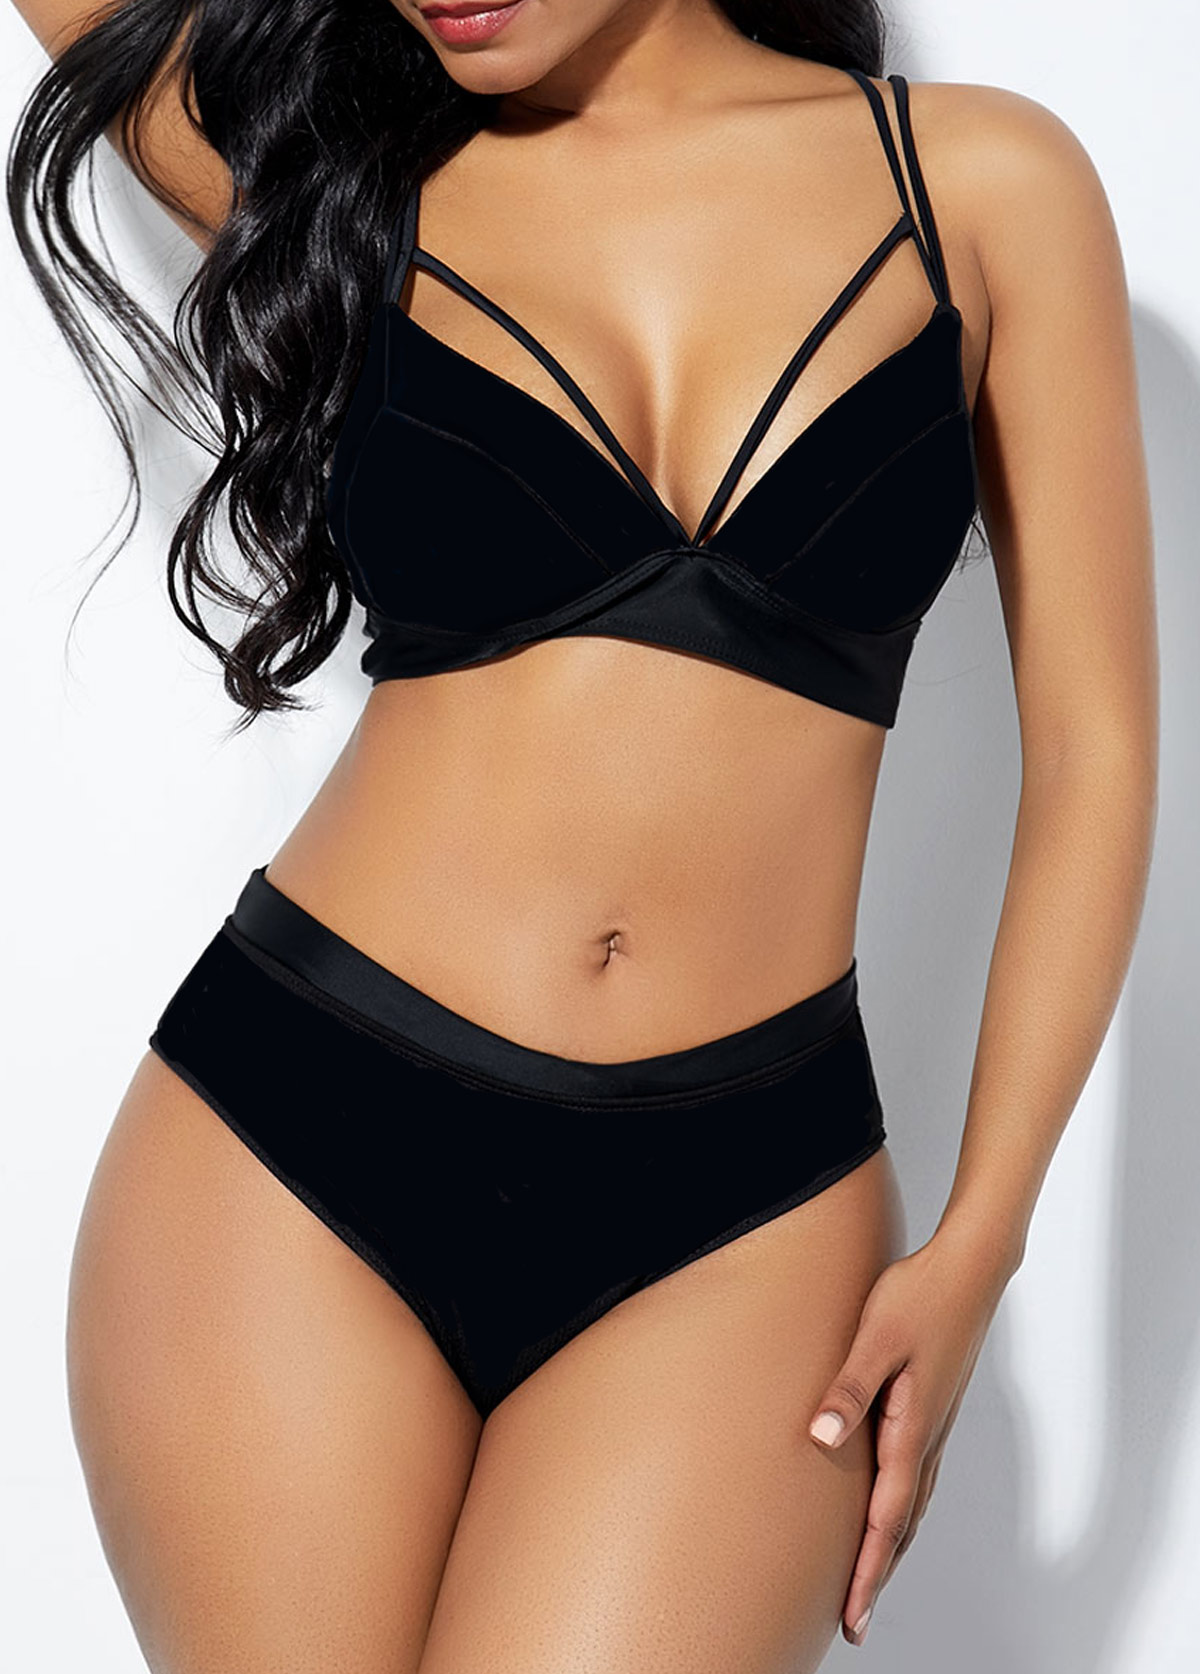 Strappy Back Black Bikini Bra and Panty